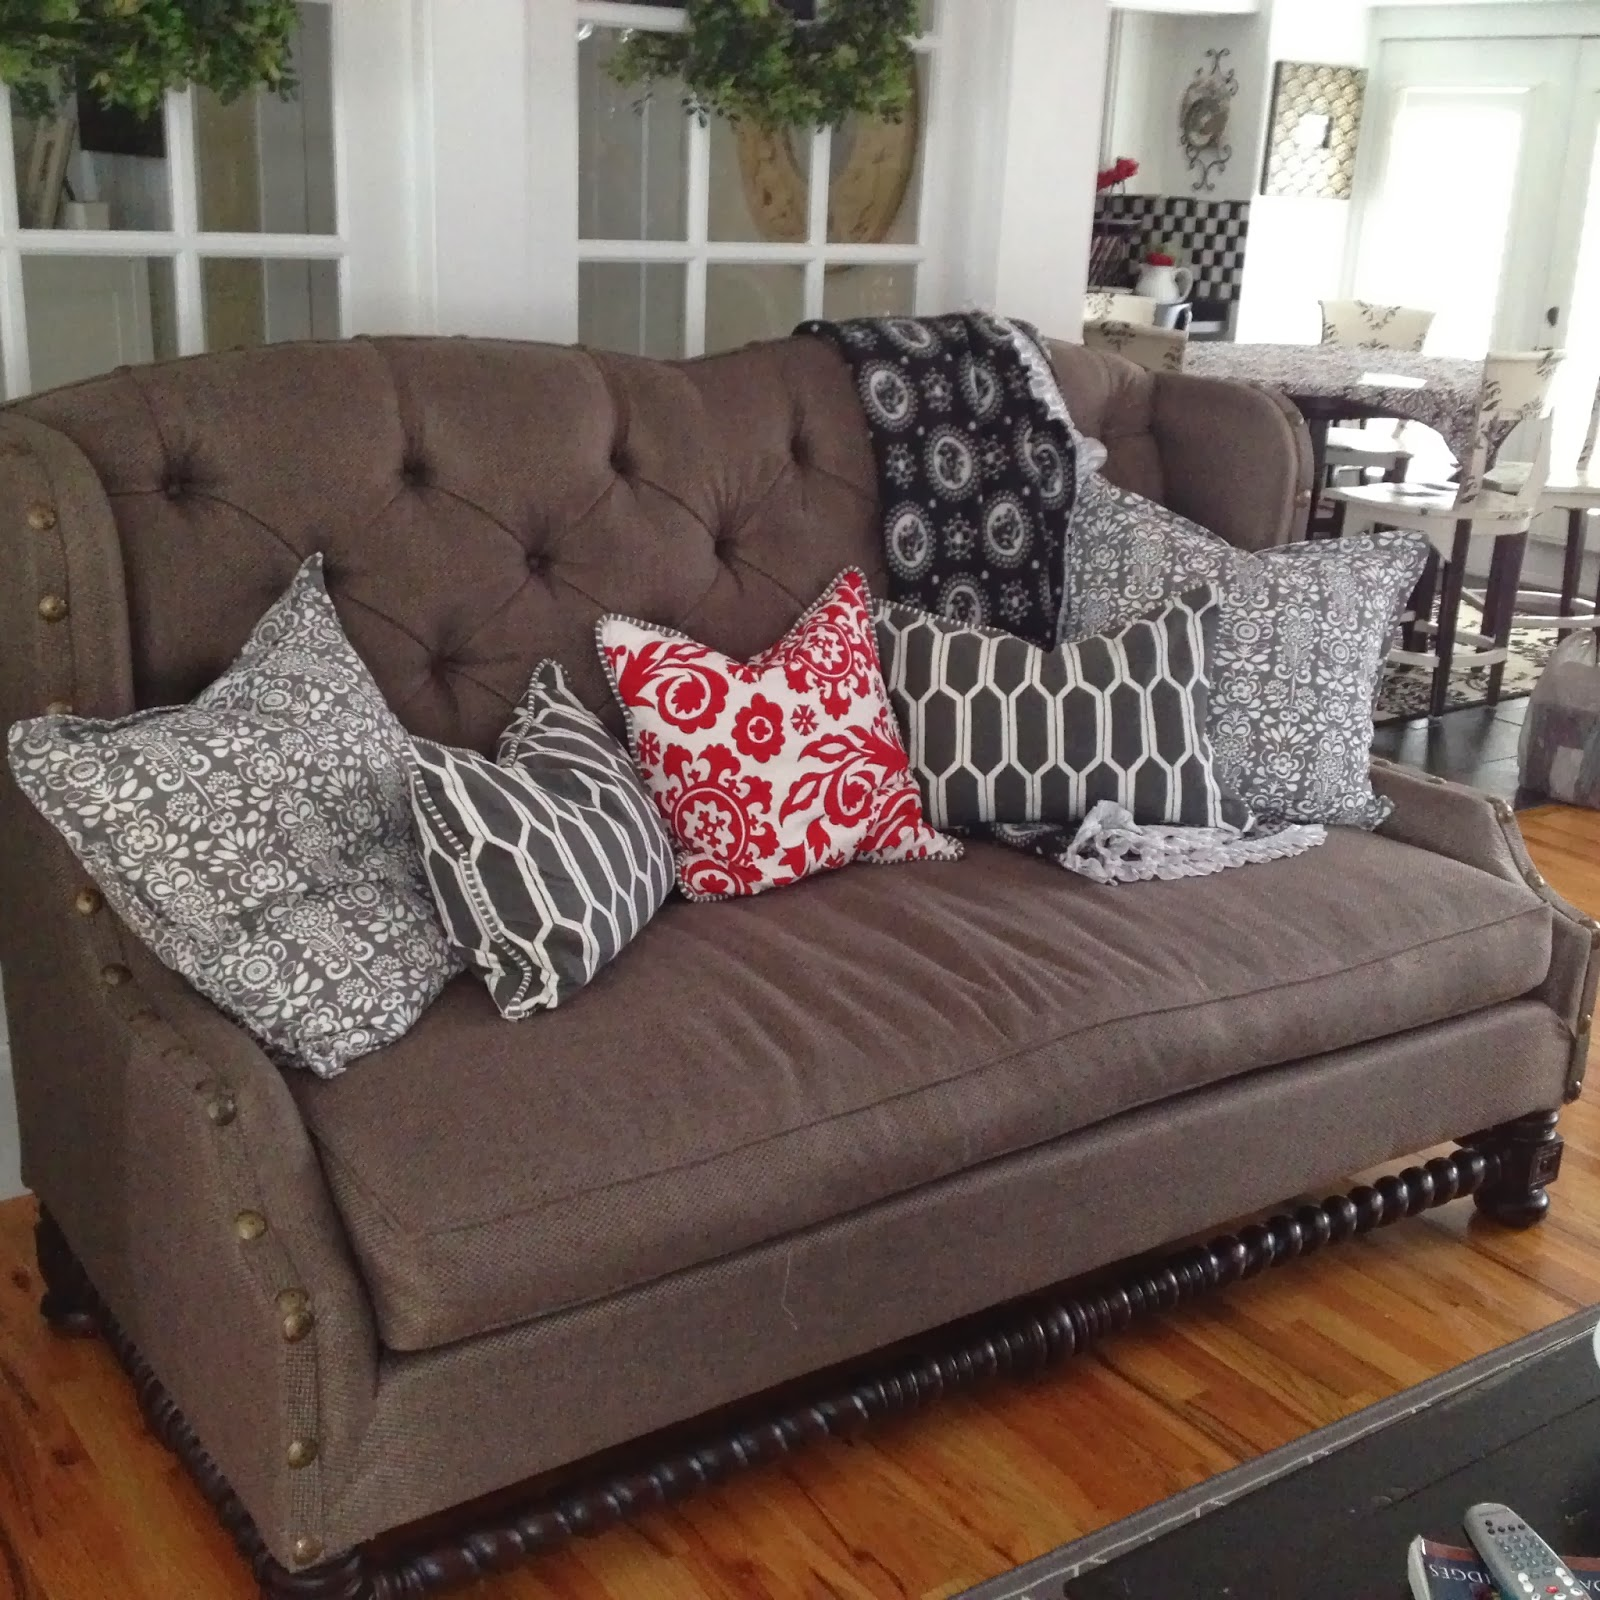 Nerd Couch Covers: The Sewing Nerd Slipcovers: Happy New Year